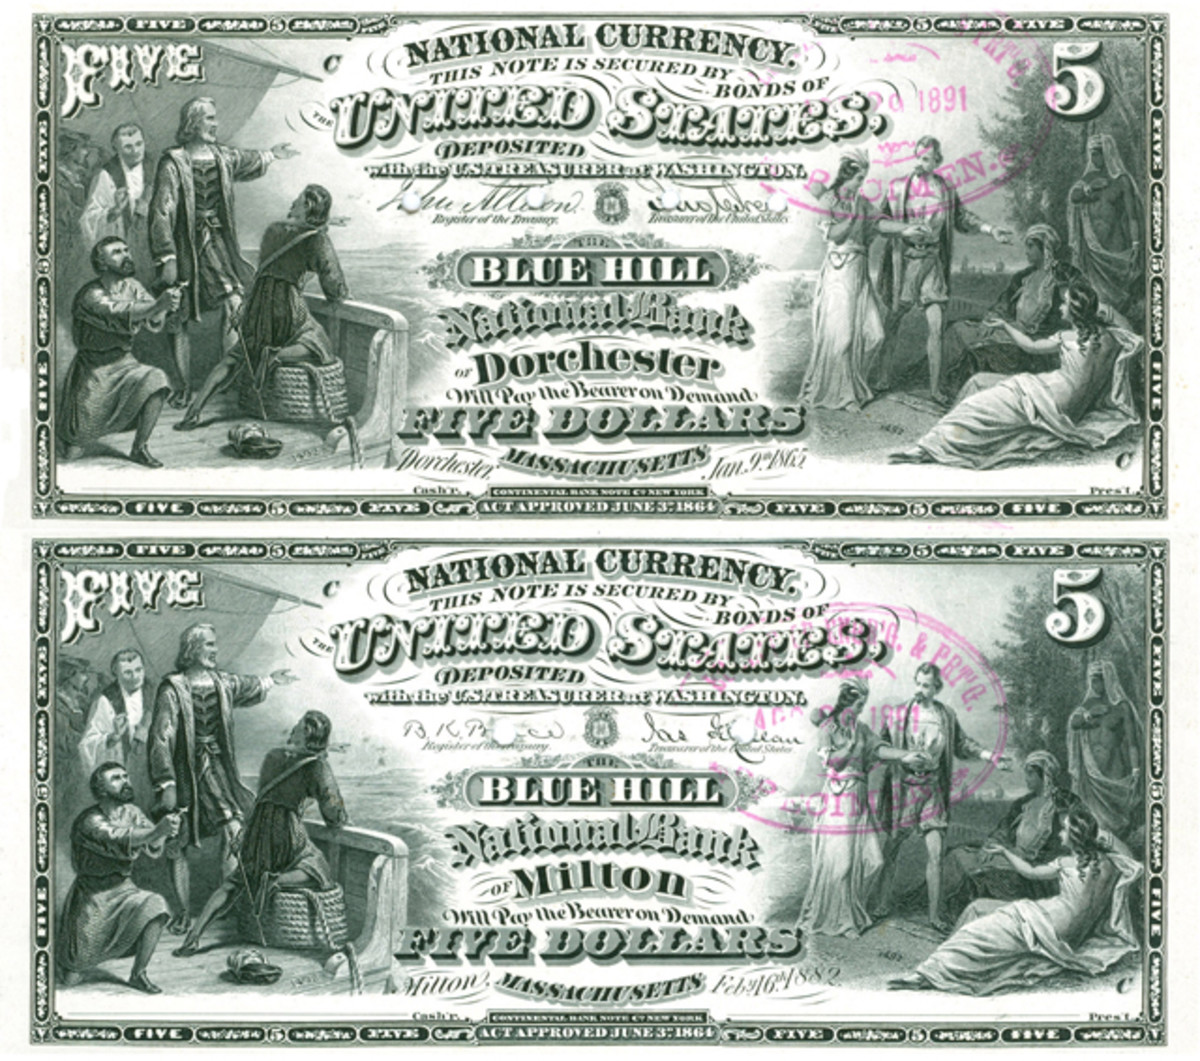 The first plate to carry a title change date was made for The Blue Hill National Bank of Milton, Mass., after the bank was moved from Dorchester. That date was Feb. 16, 1882.